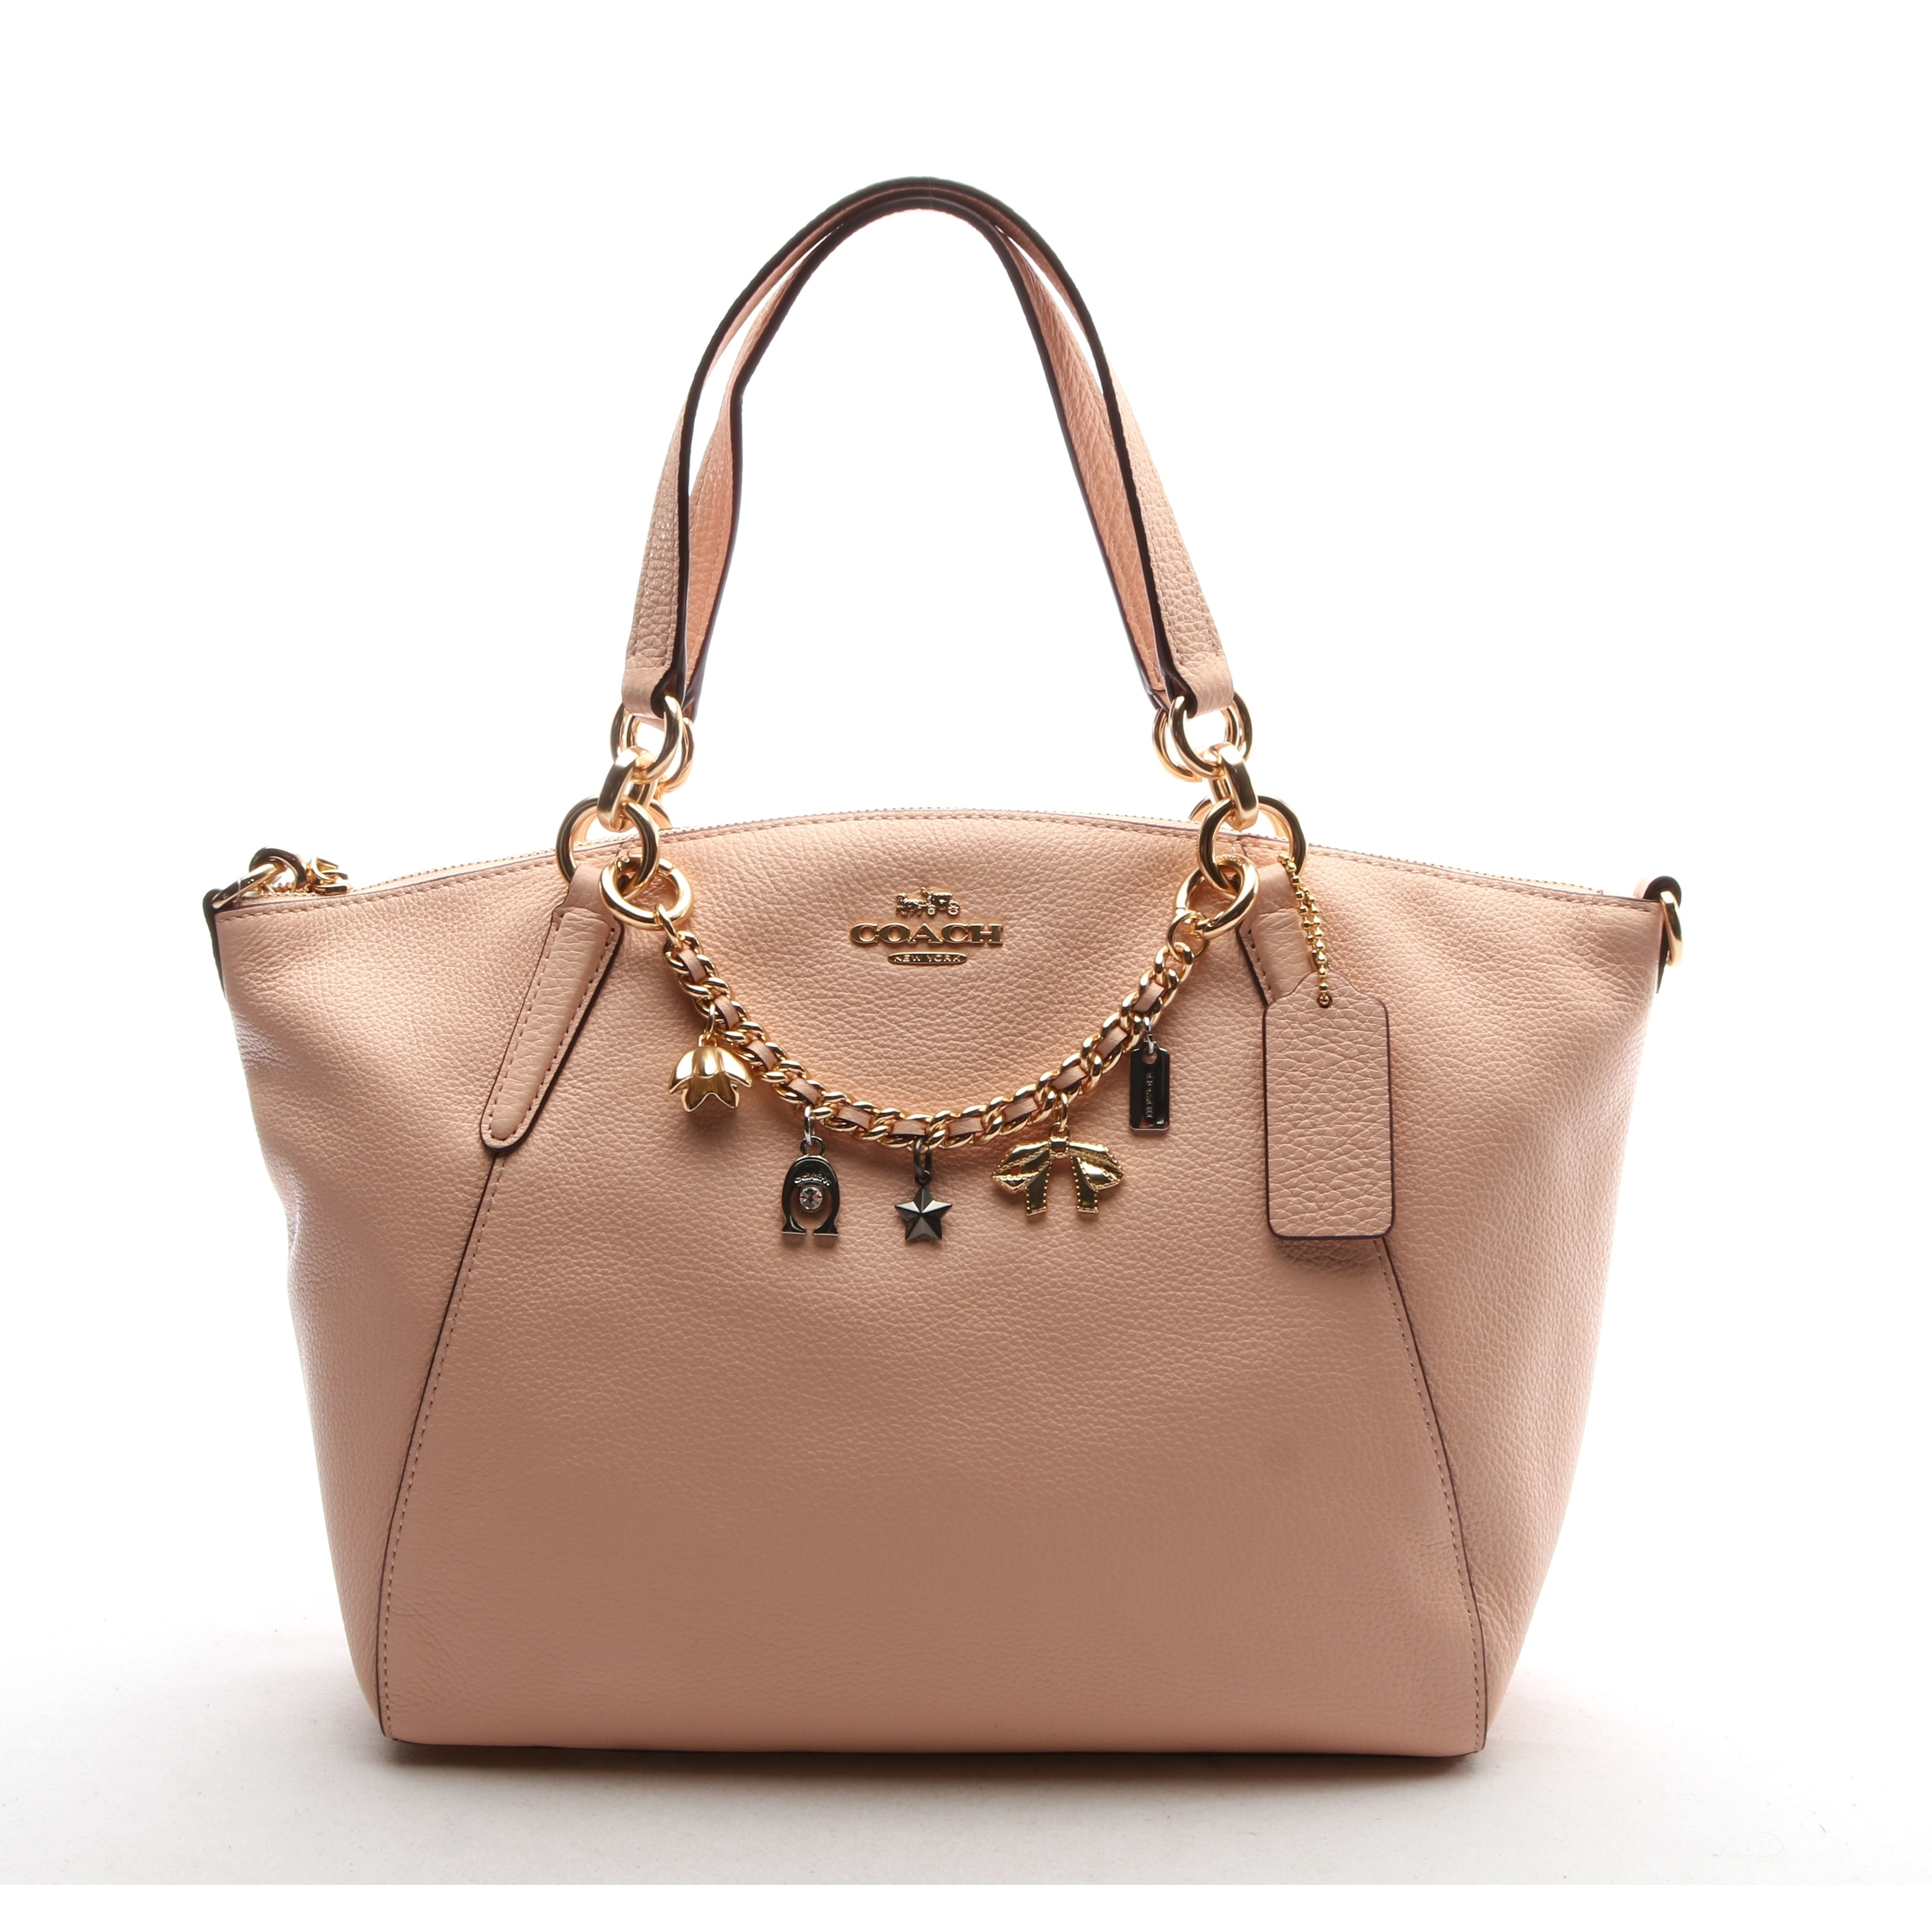 92b68b4f119a Shop Coach Women's Small Kelsey Satchel With Bracelet - Free Shipping Today  - Overstock - 28377884